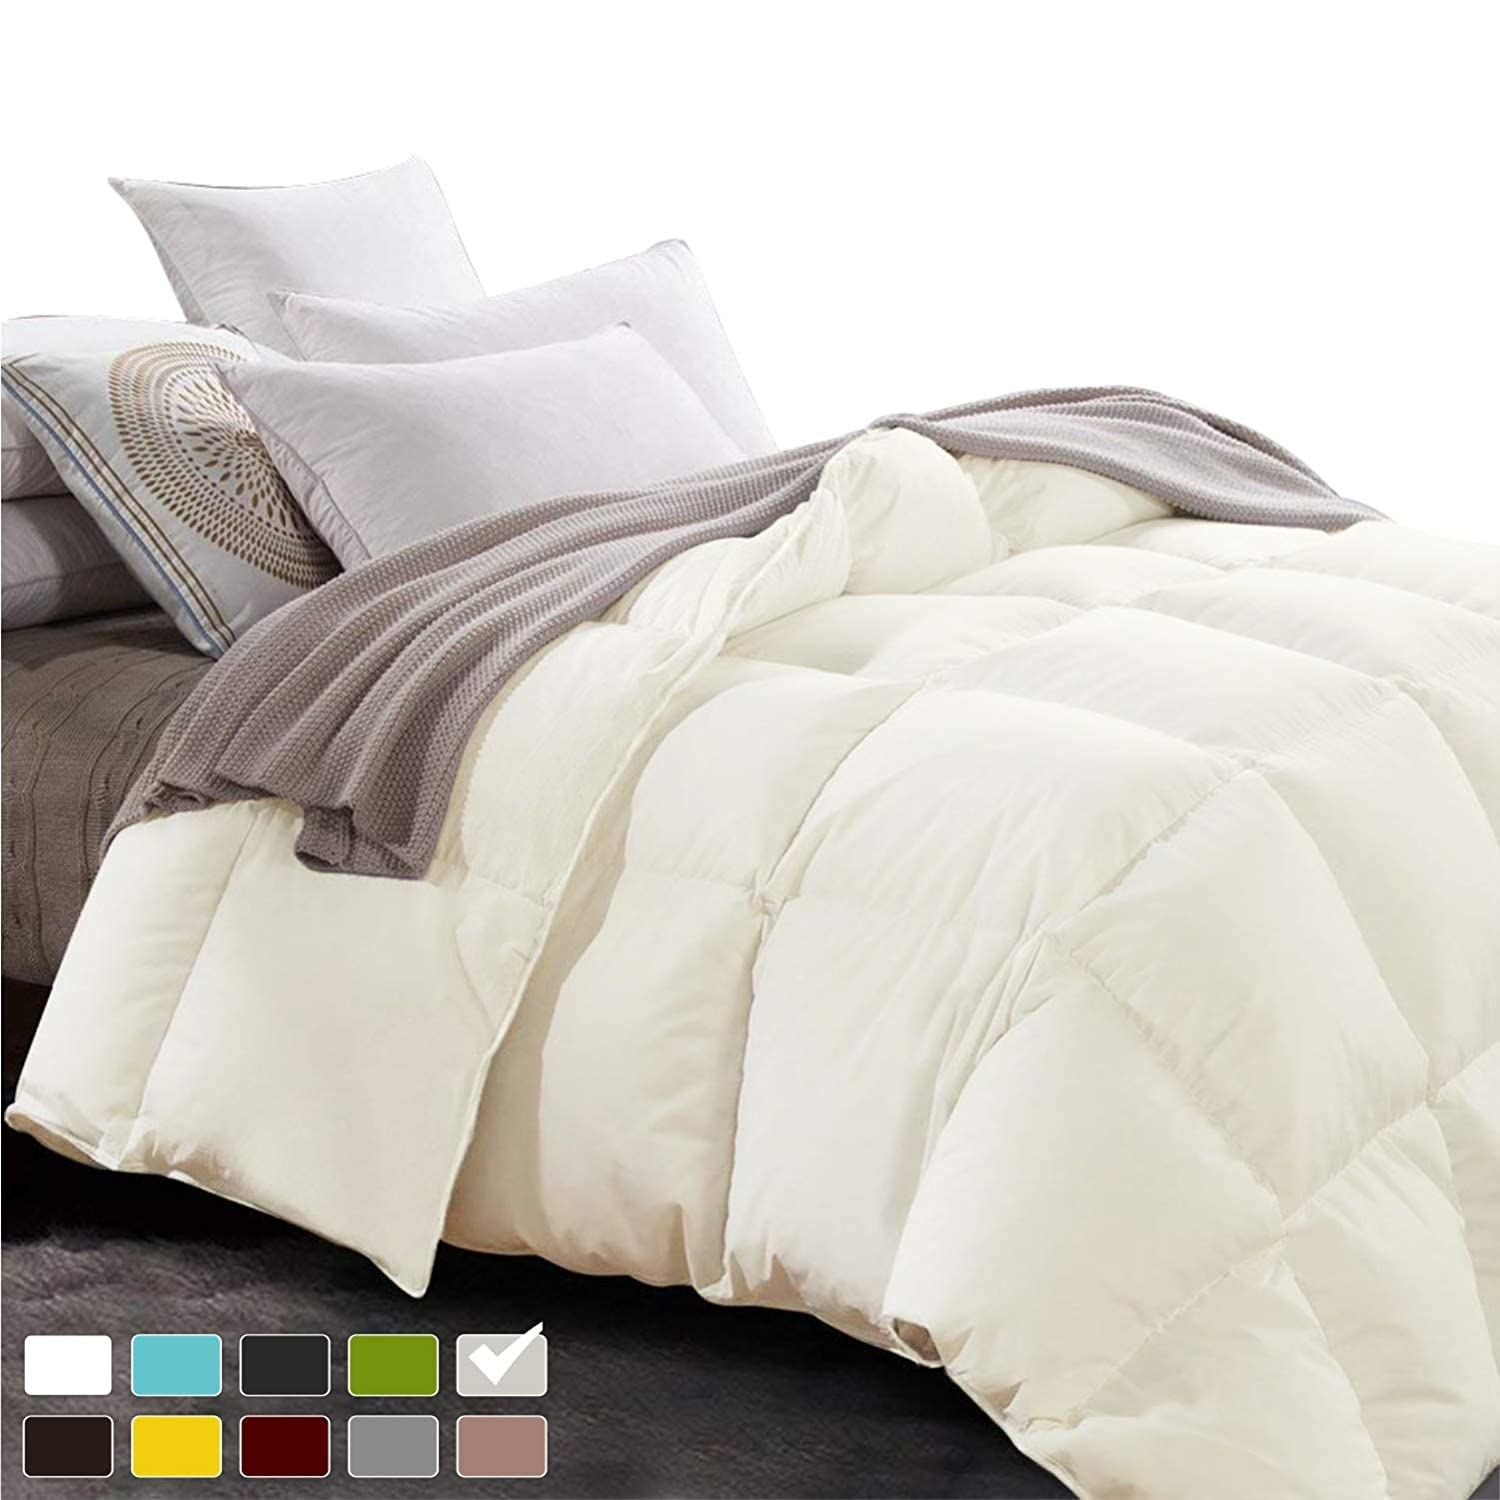 New York Mercado 100/% Organic Cotton Comforter Luxury and Premium Quality Quilted with Corner Tabs 500 GSM GOTS Certified 800 TC All Season Warm Fluffy Ultra-Soft Comforter Full//Queen Black